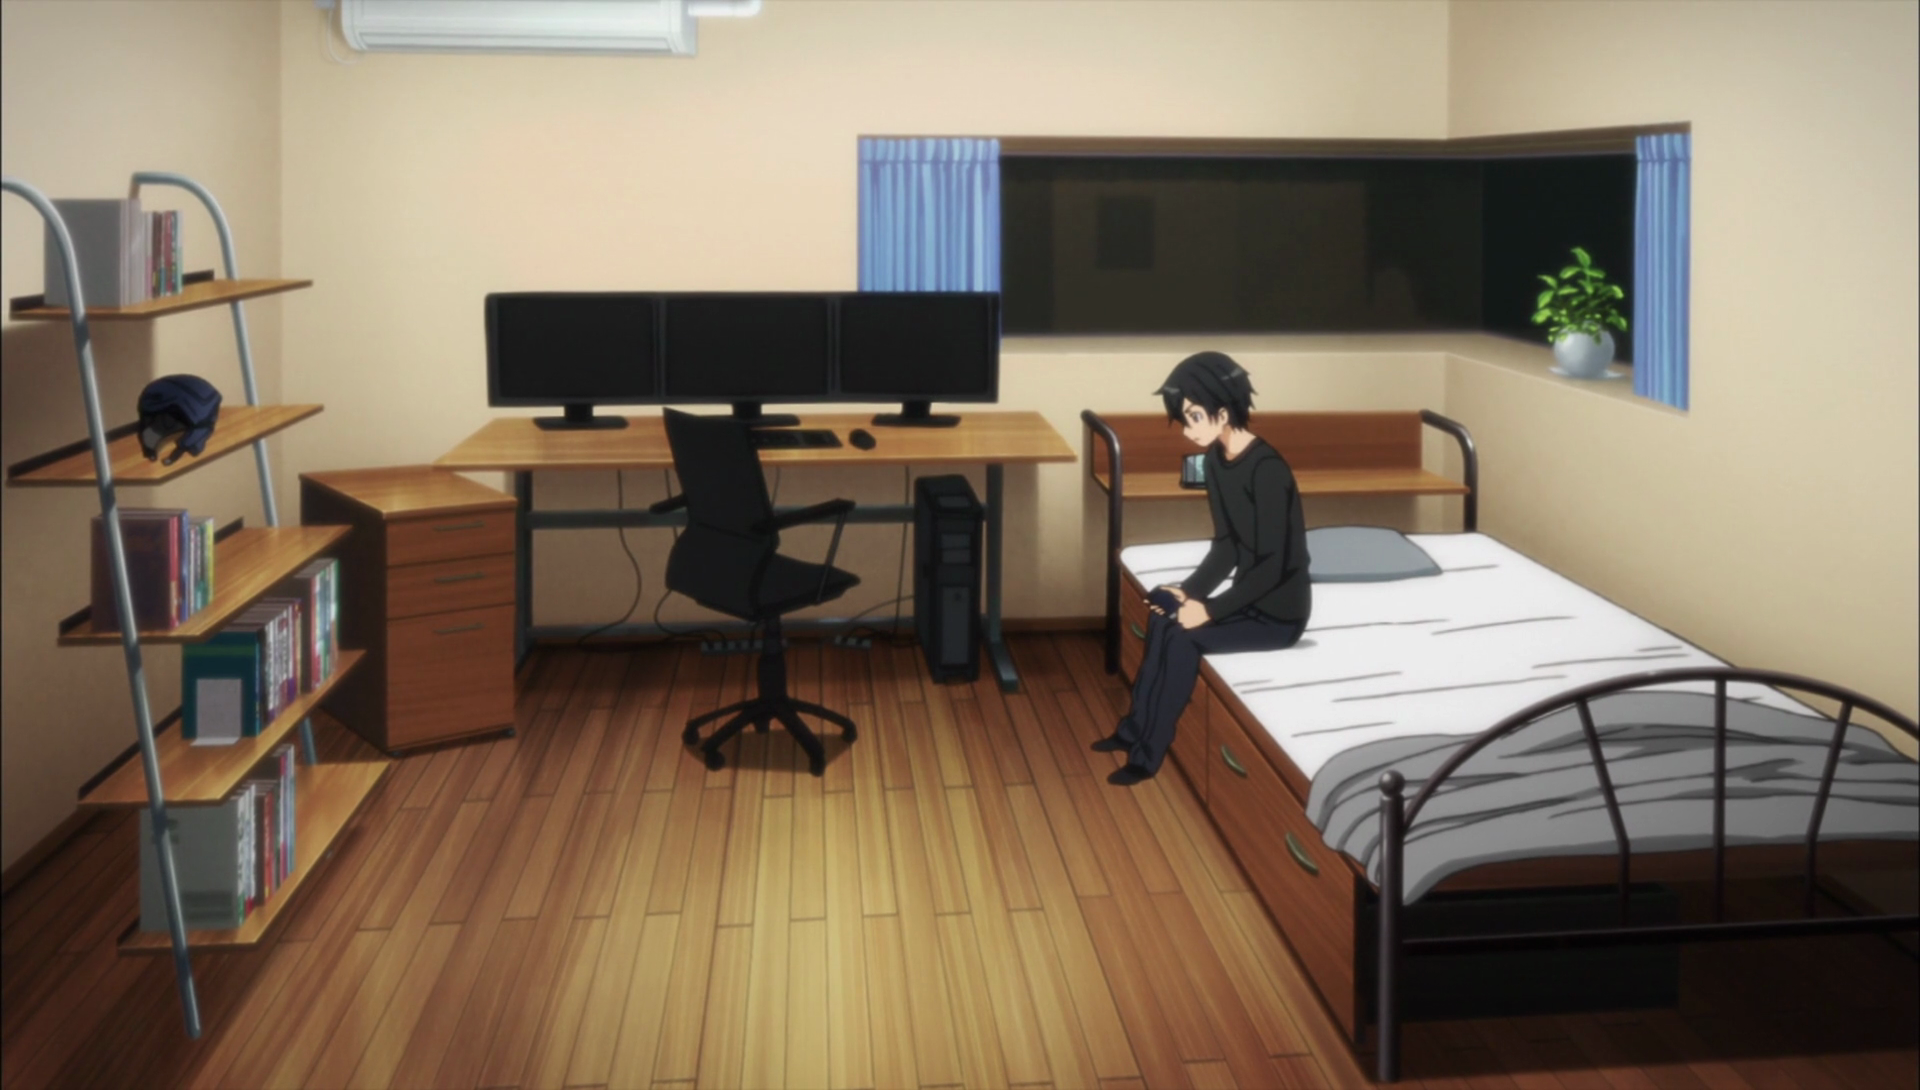 kanzaki chat rooms Kusanagi enters a chat room dedicated to the laughing man  former japanese prime minister kanzaki's daughter has been abducted and section 9 is called in to.